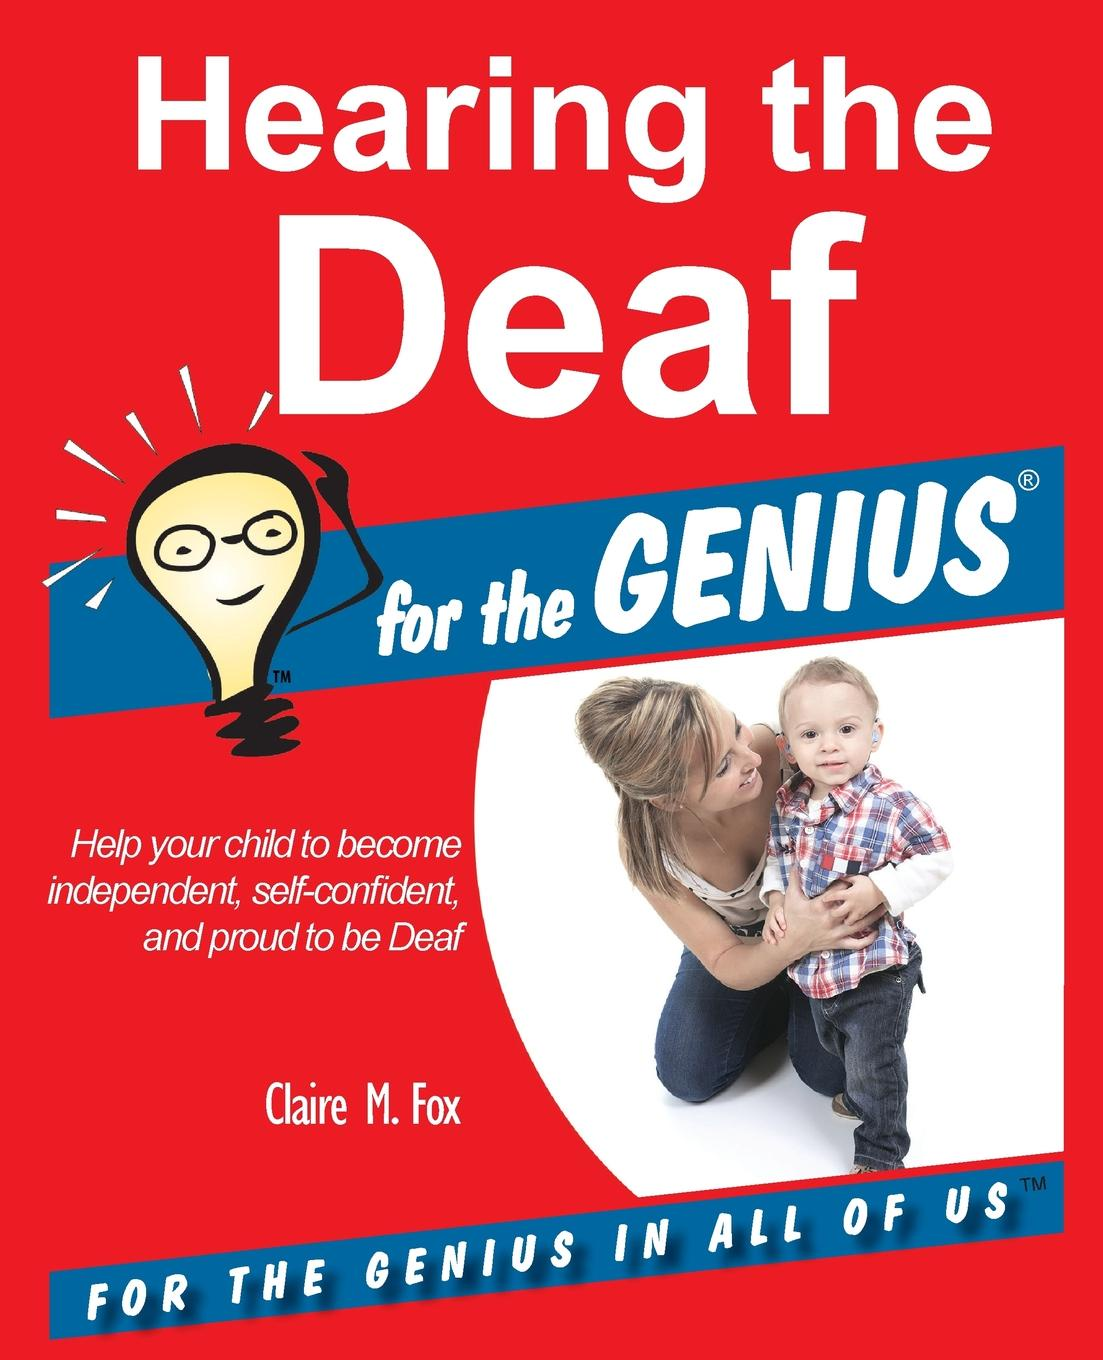 Claire M. Fox Hearing the DEAF for the GENIUS pocket hearing aid deaf aid sound audiphone voice amplifier digital sound amplifier ear amplifier hearing aids for elderly s 7b